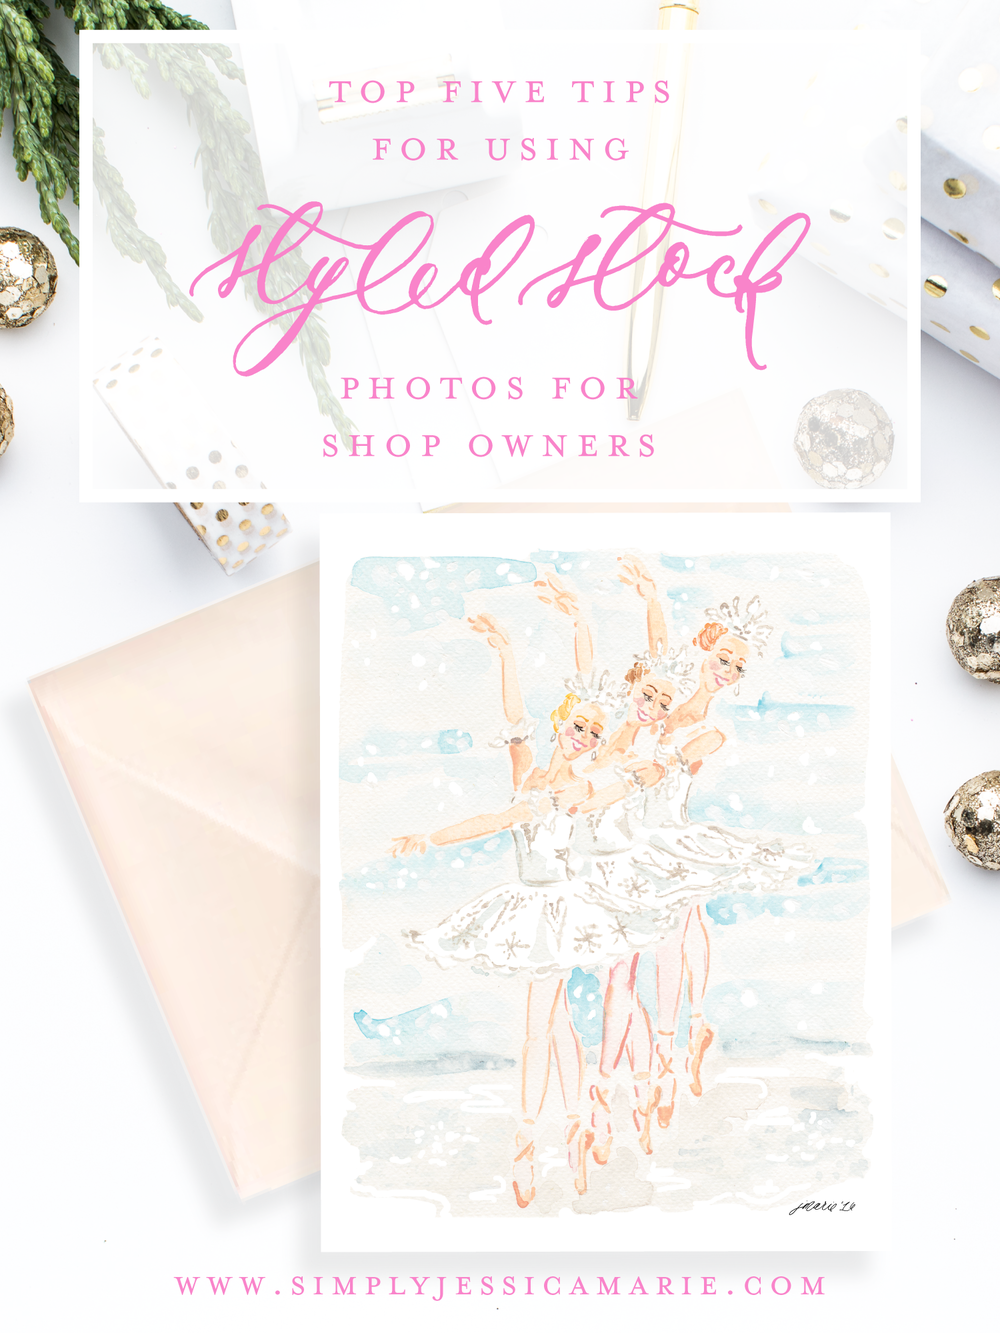 Top Five Tips for Using Styled Stock Photos for Shop Owners